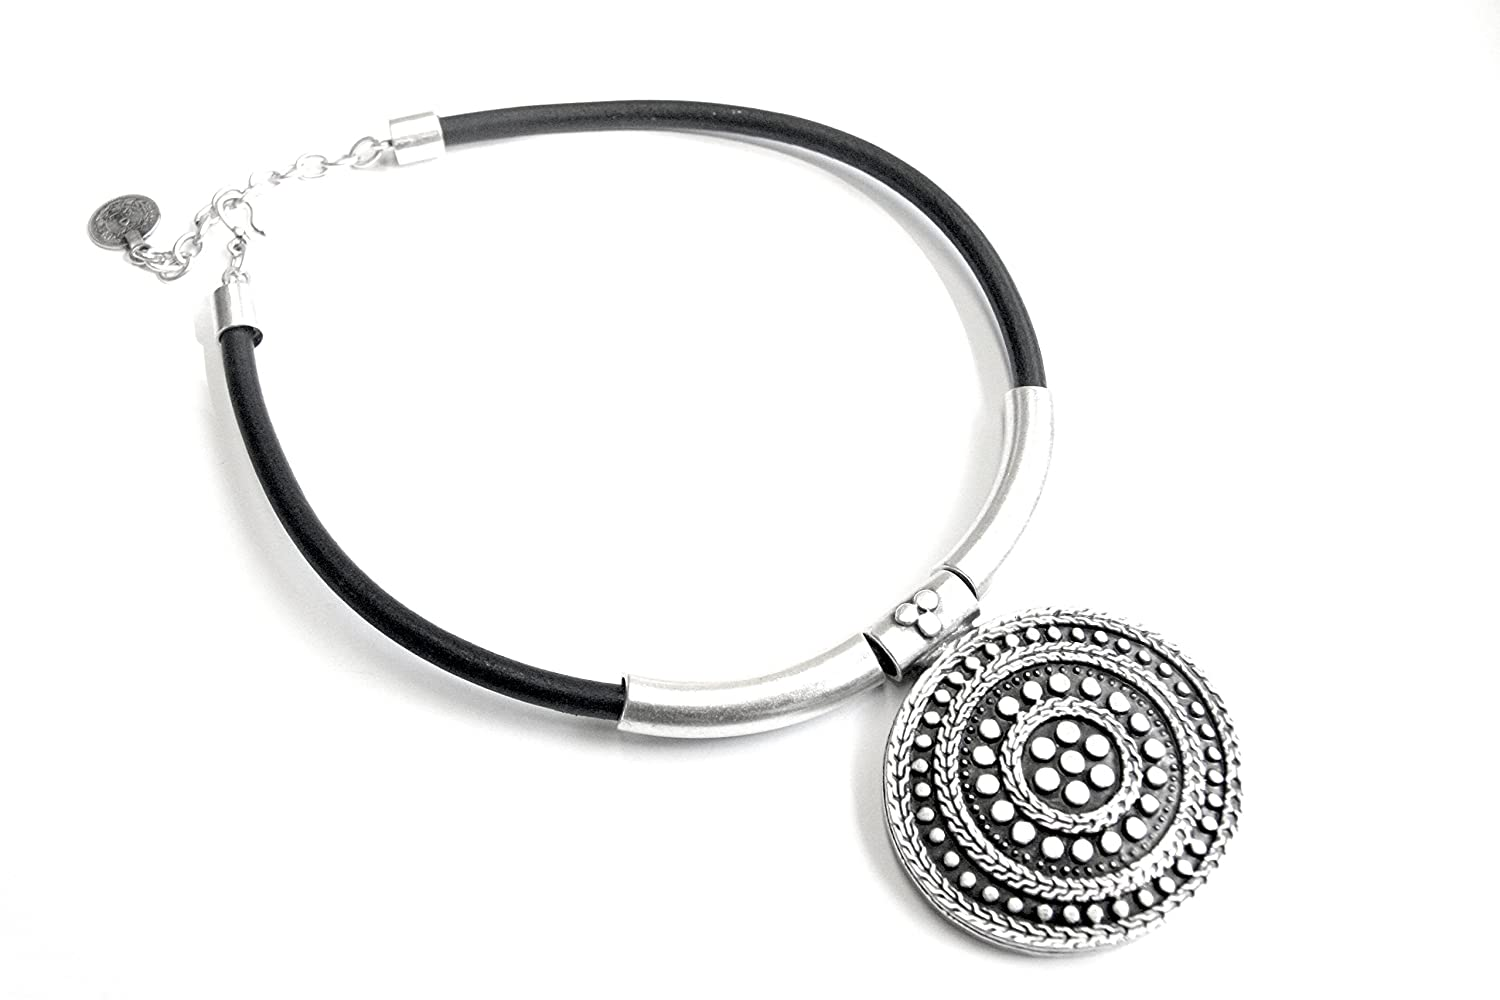 Chanour Jewelry Pewter /& Leather Necklace